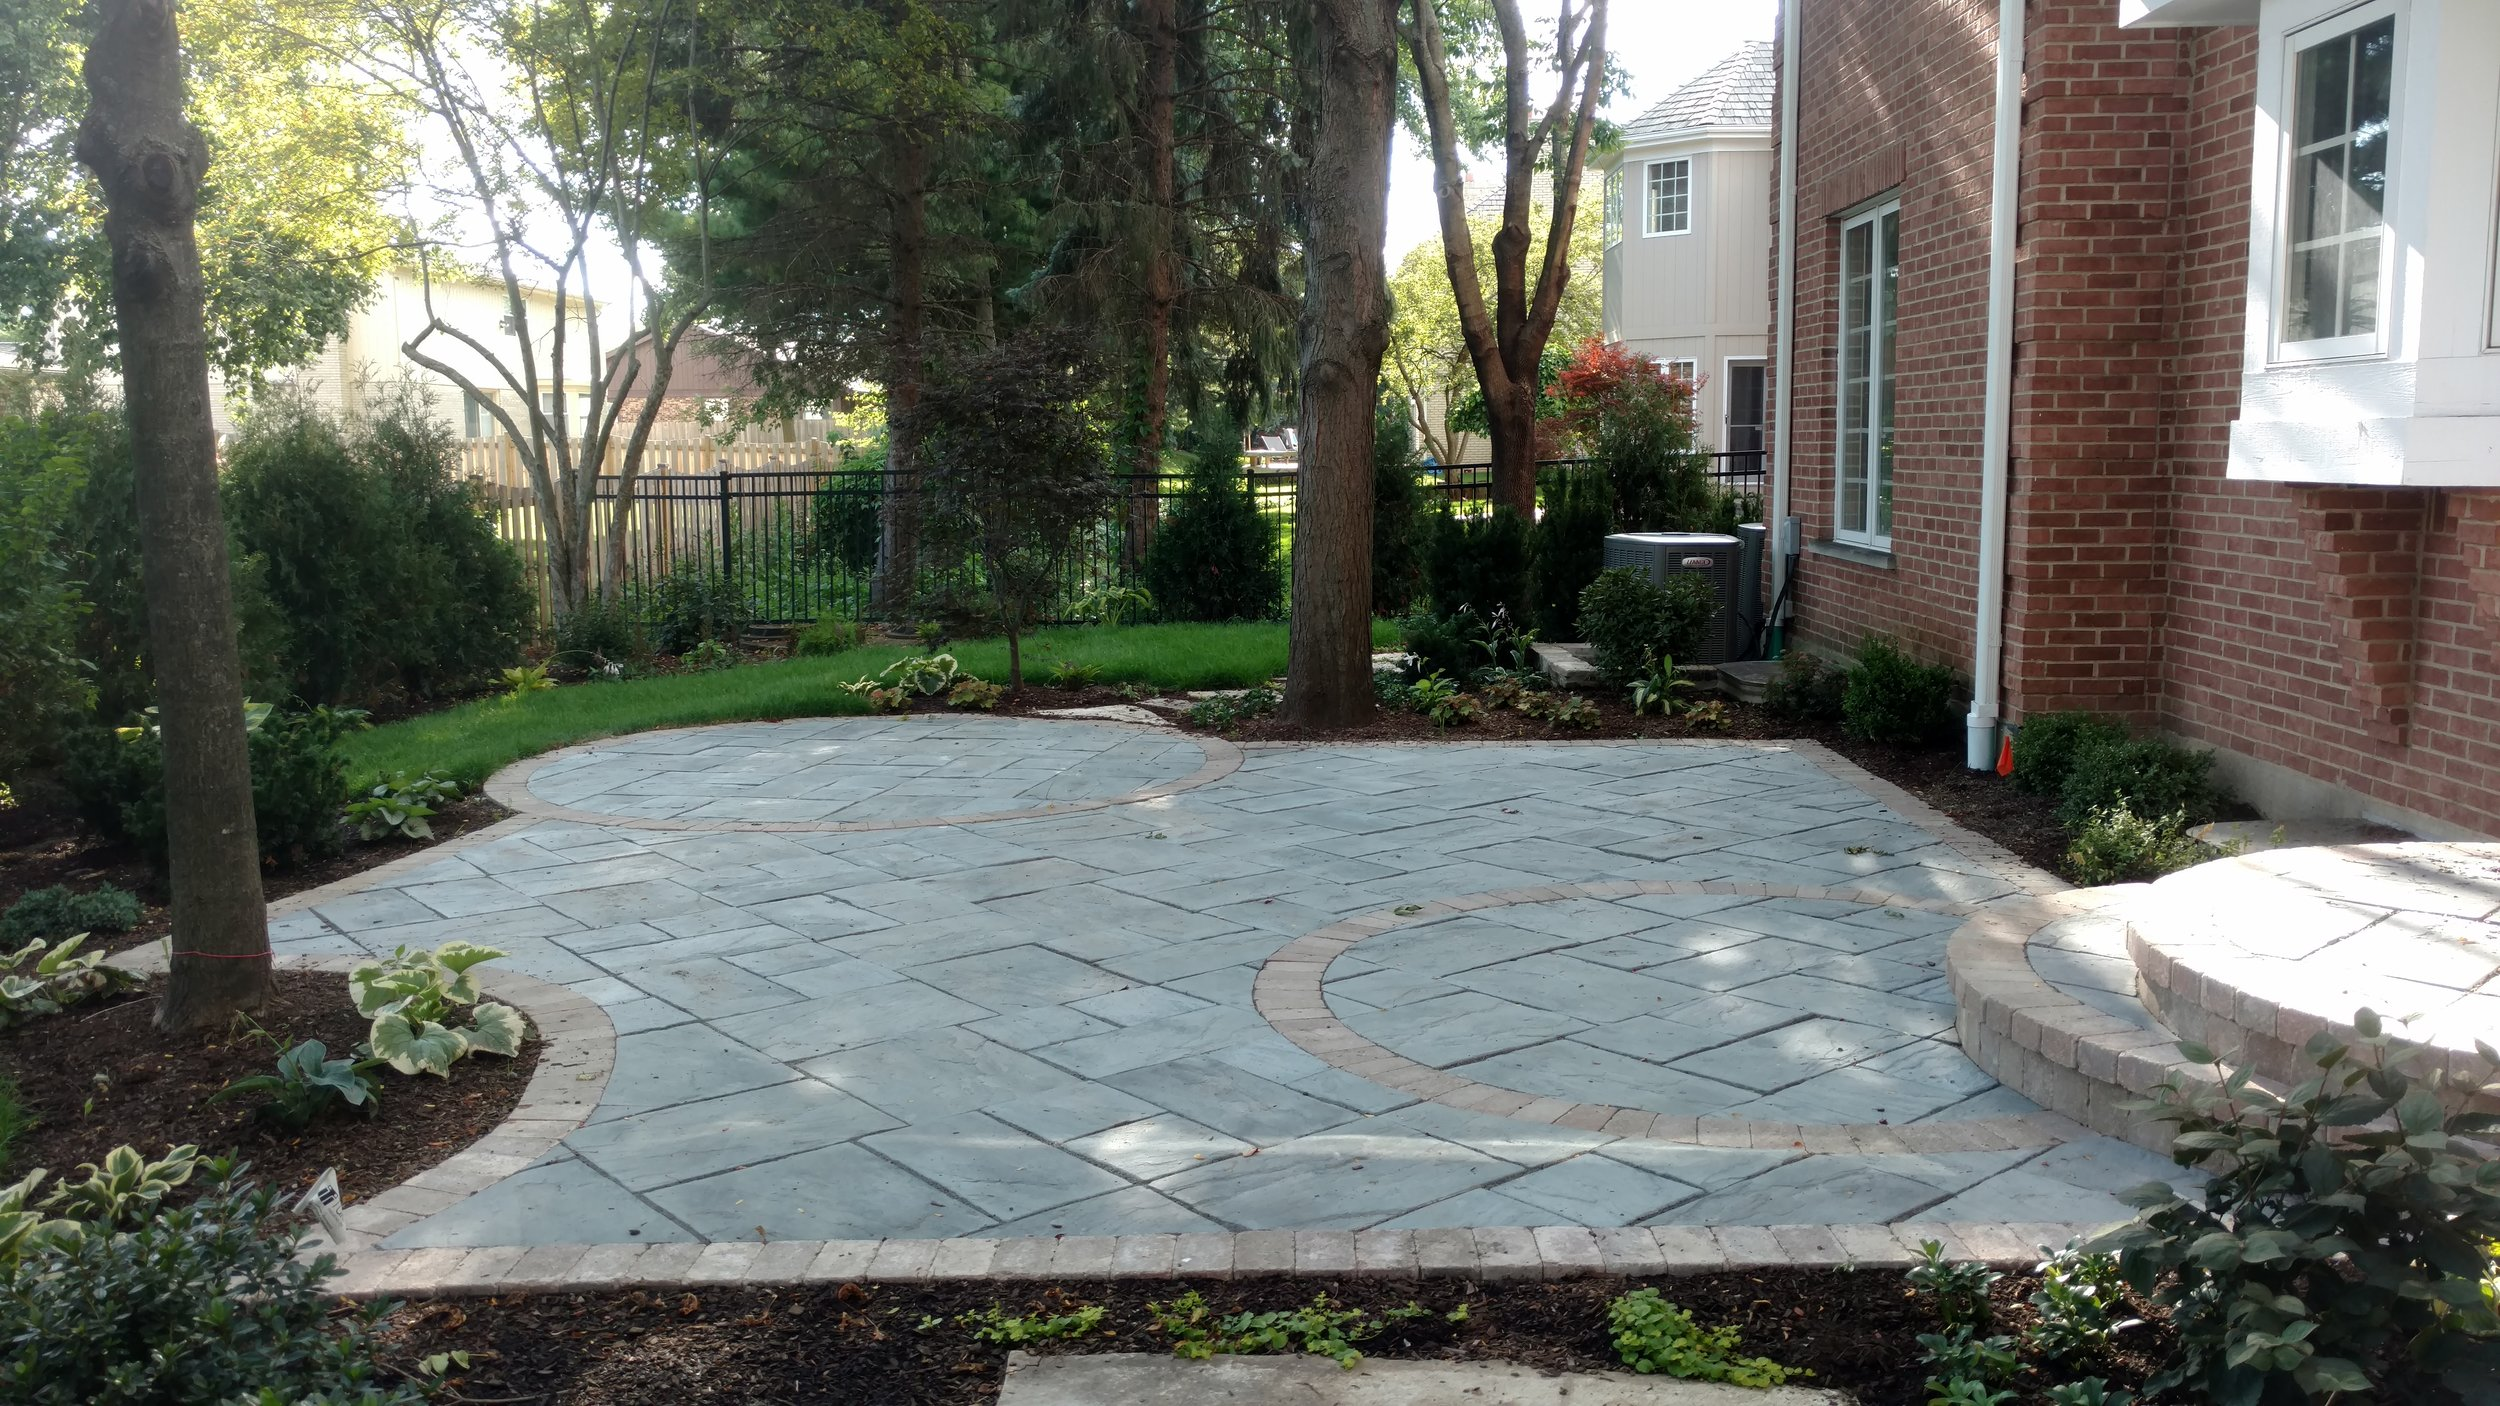 inlay-patio-leveled-with-landscaping